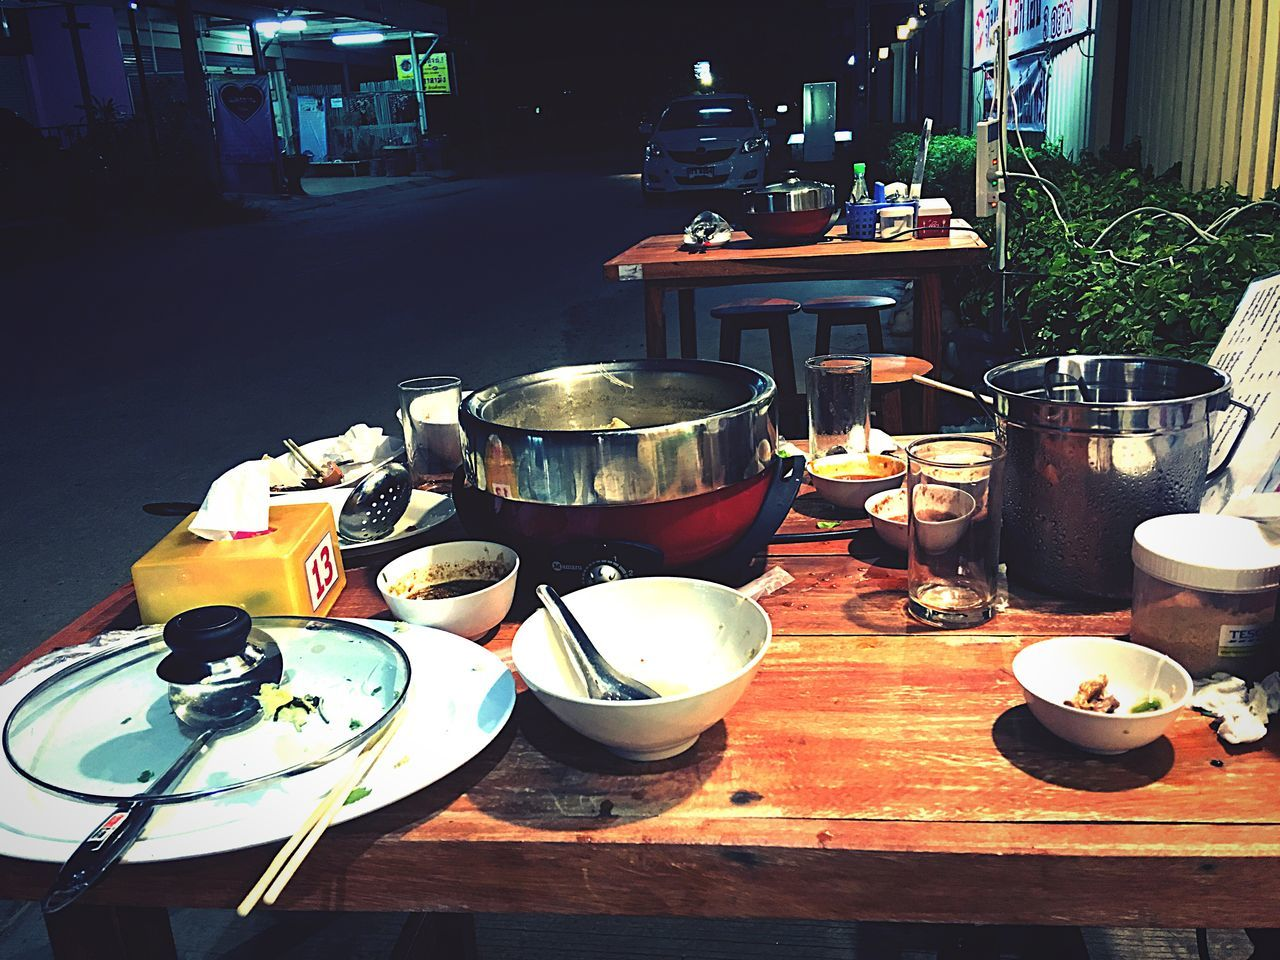 Food Dinner Dinner Time Sidewalk Side Street Soup Night View Life Beautiful Life Chim Pot Chimpot Boiled Hot Countryside Country Life Country Road Countrylife Countryside Life Finished Party Restaurant Food And Drink